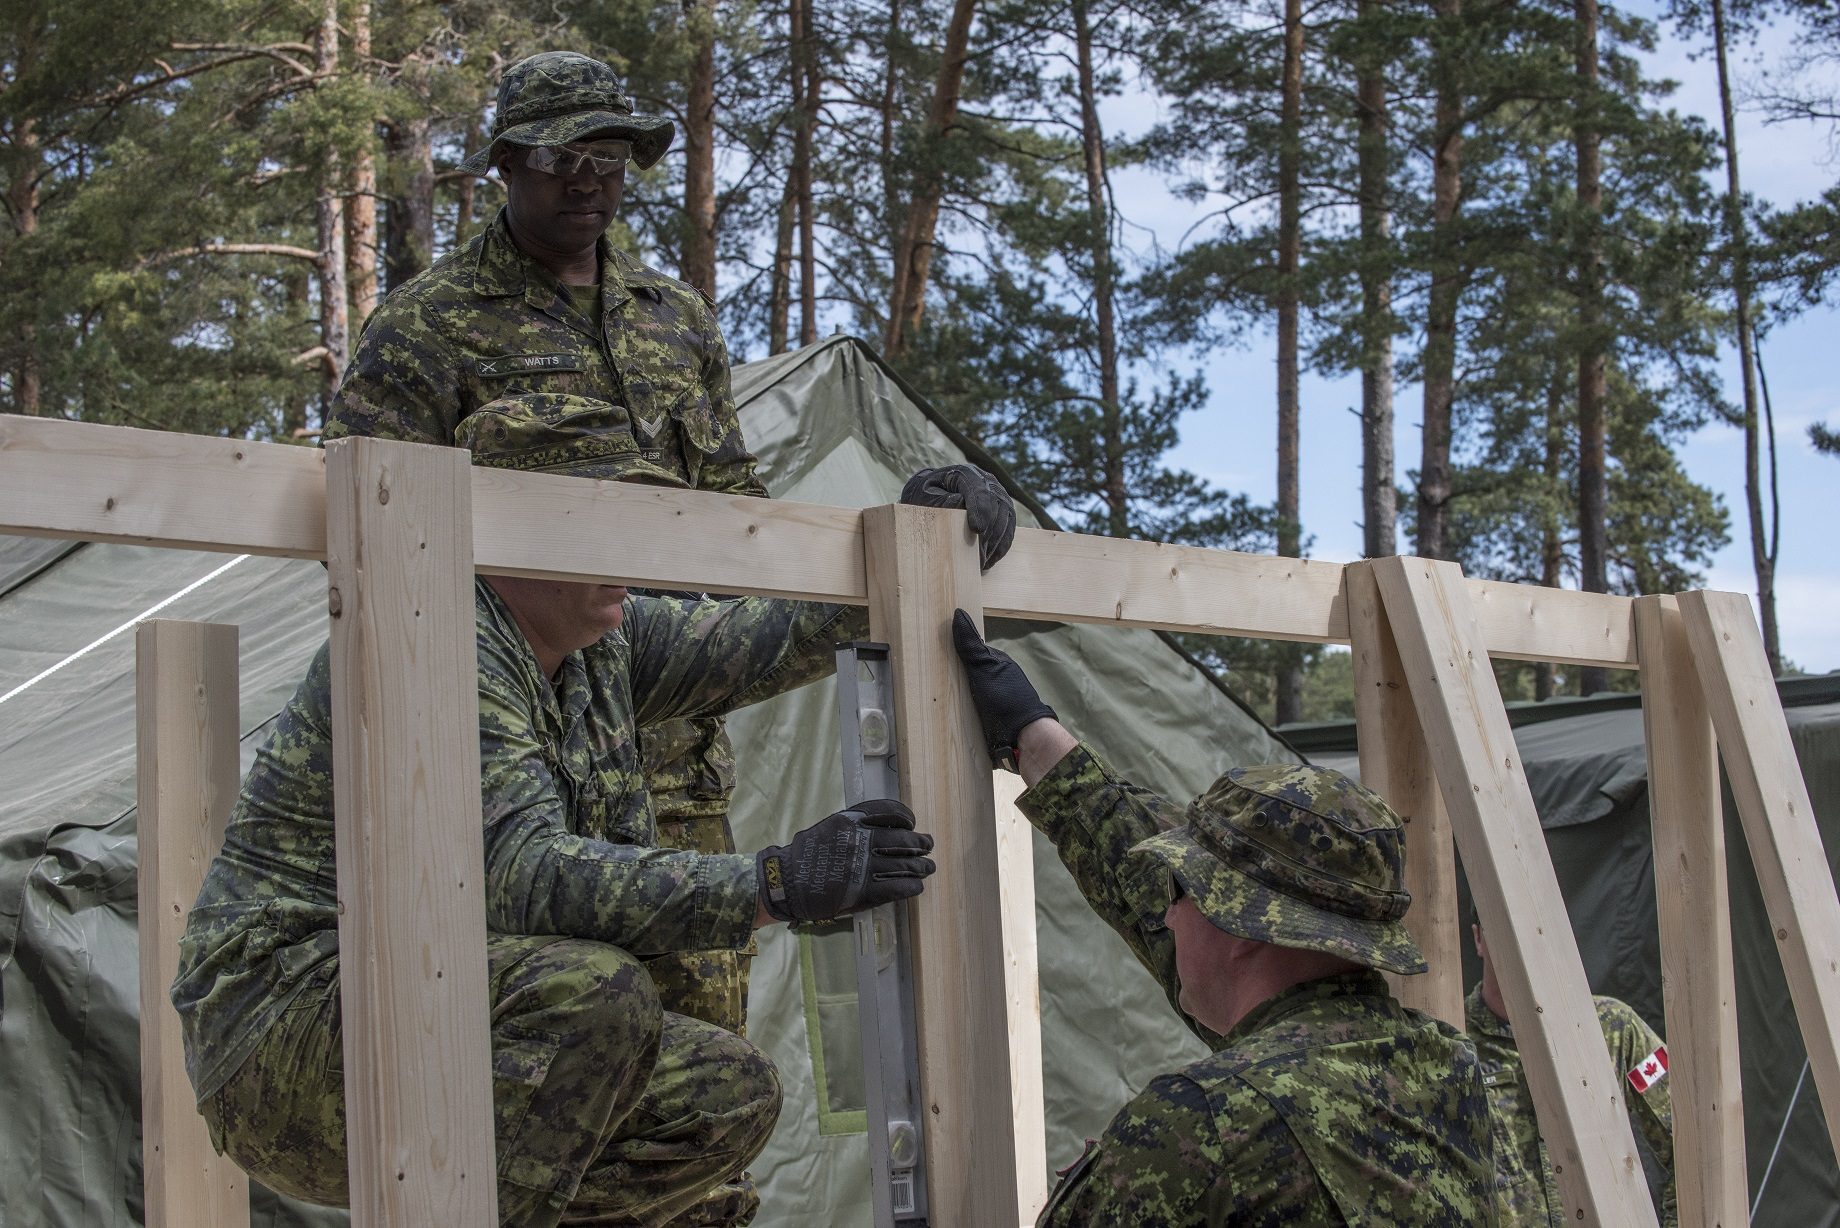 May 23, 2017. Members from the Theatre Opening Team, build a bridge over the plumbing of Life Support Area (LSA) 2, at Camp Adazi, Latvia, on May 23, 2017, in advance of the arrival of NATO's enhanced Forward Presence multinational battlegroup in Latvia.'